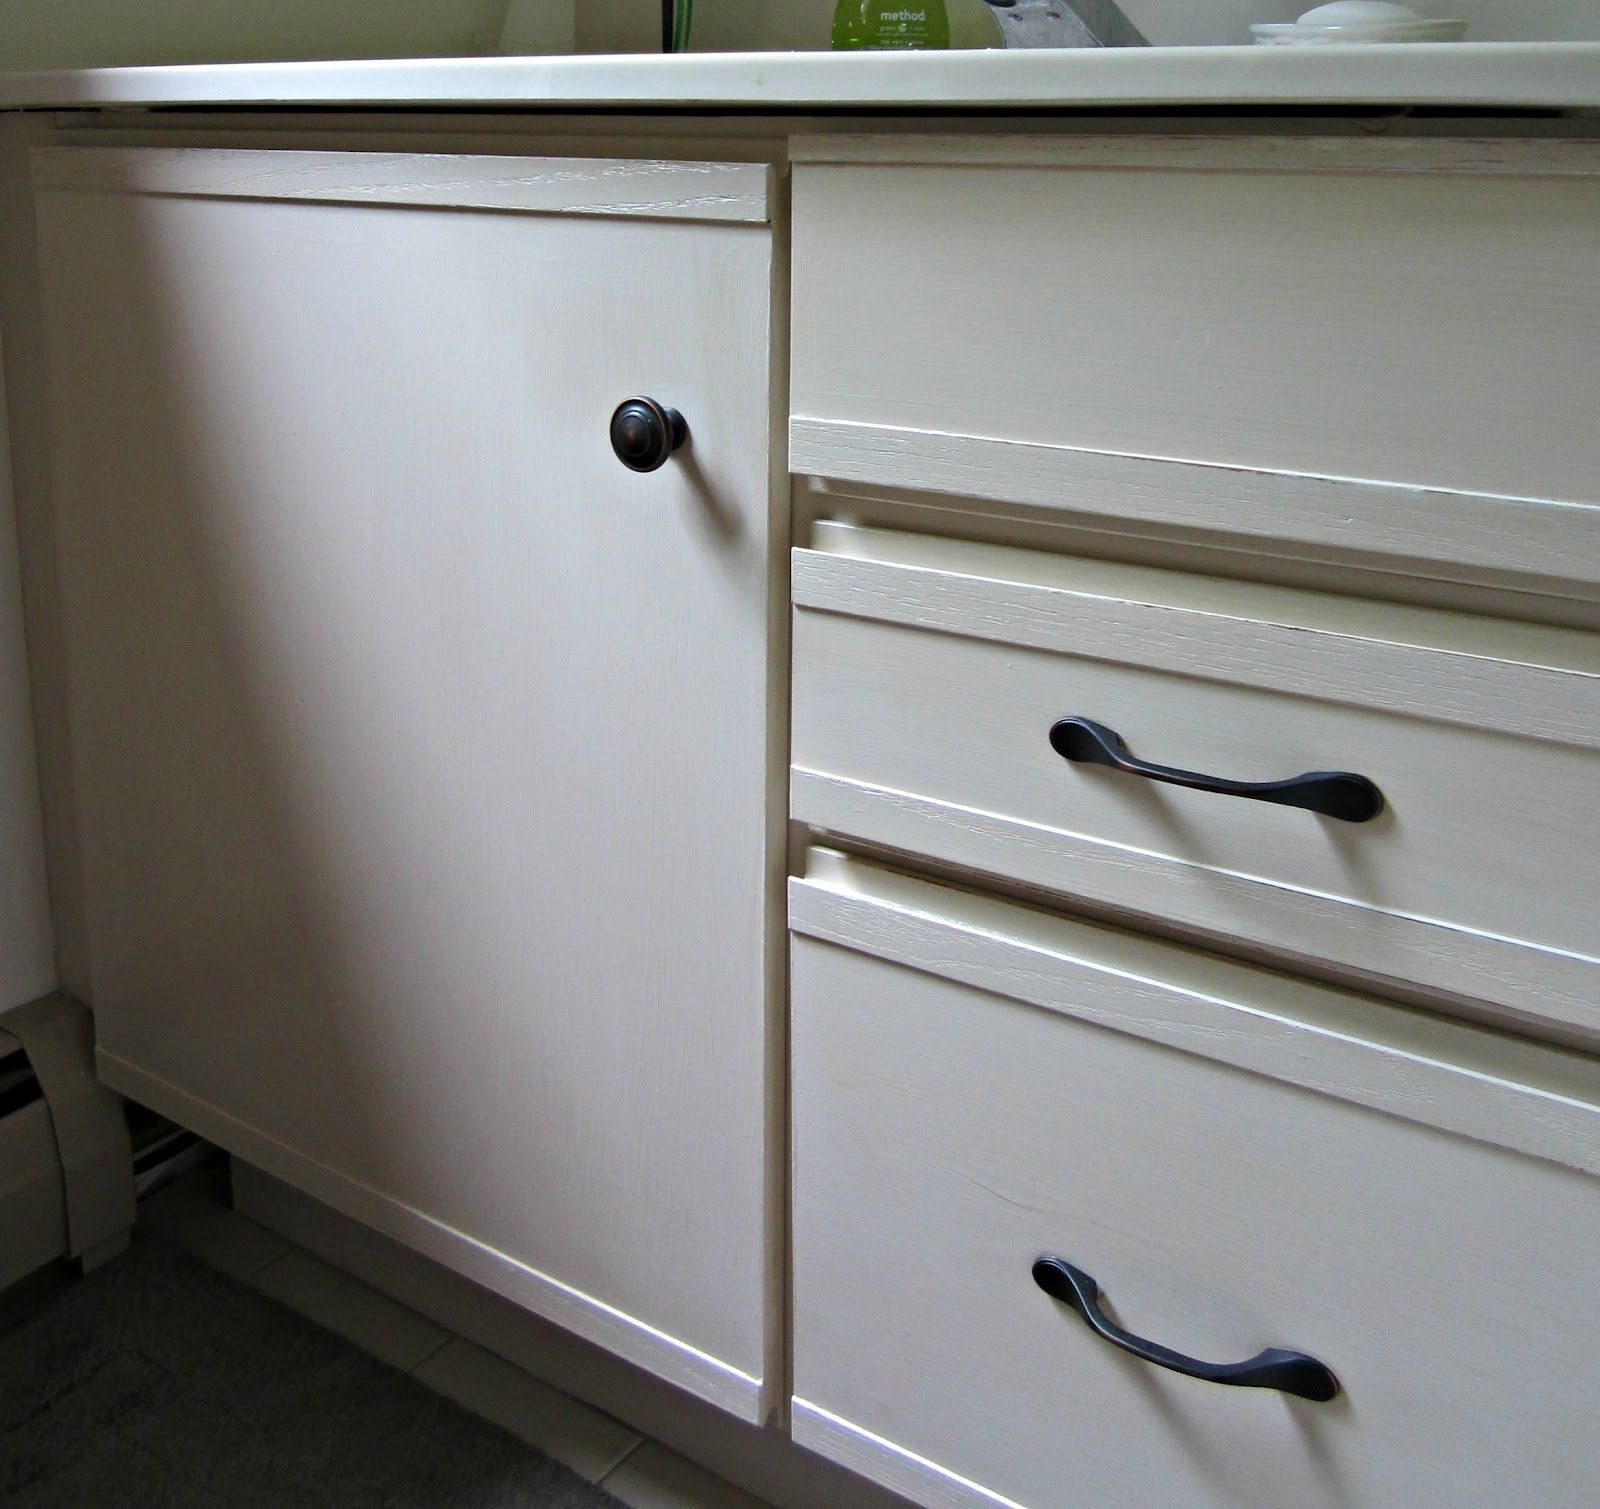 Painting Formica Laminate Cabinets Home Ideas Pinterest Painting Laminate Cabinets The O